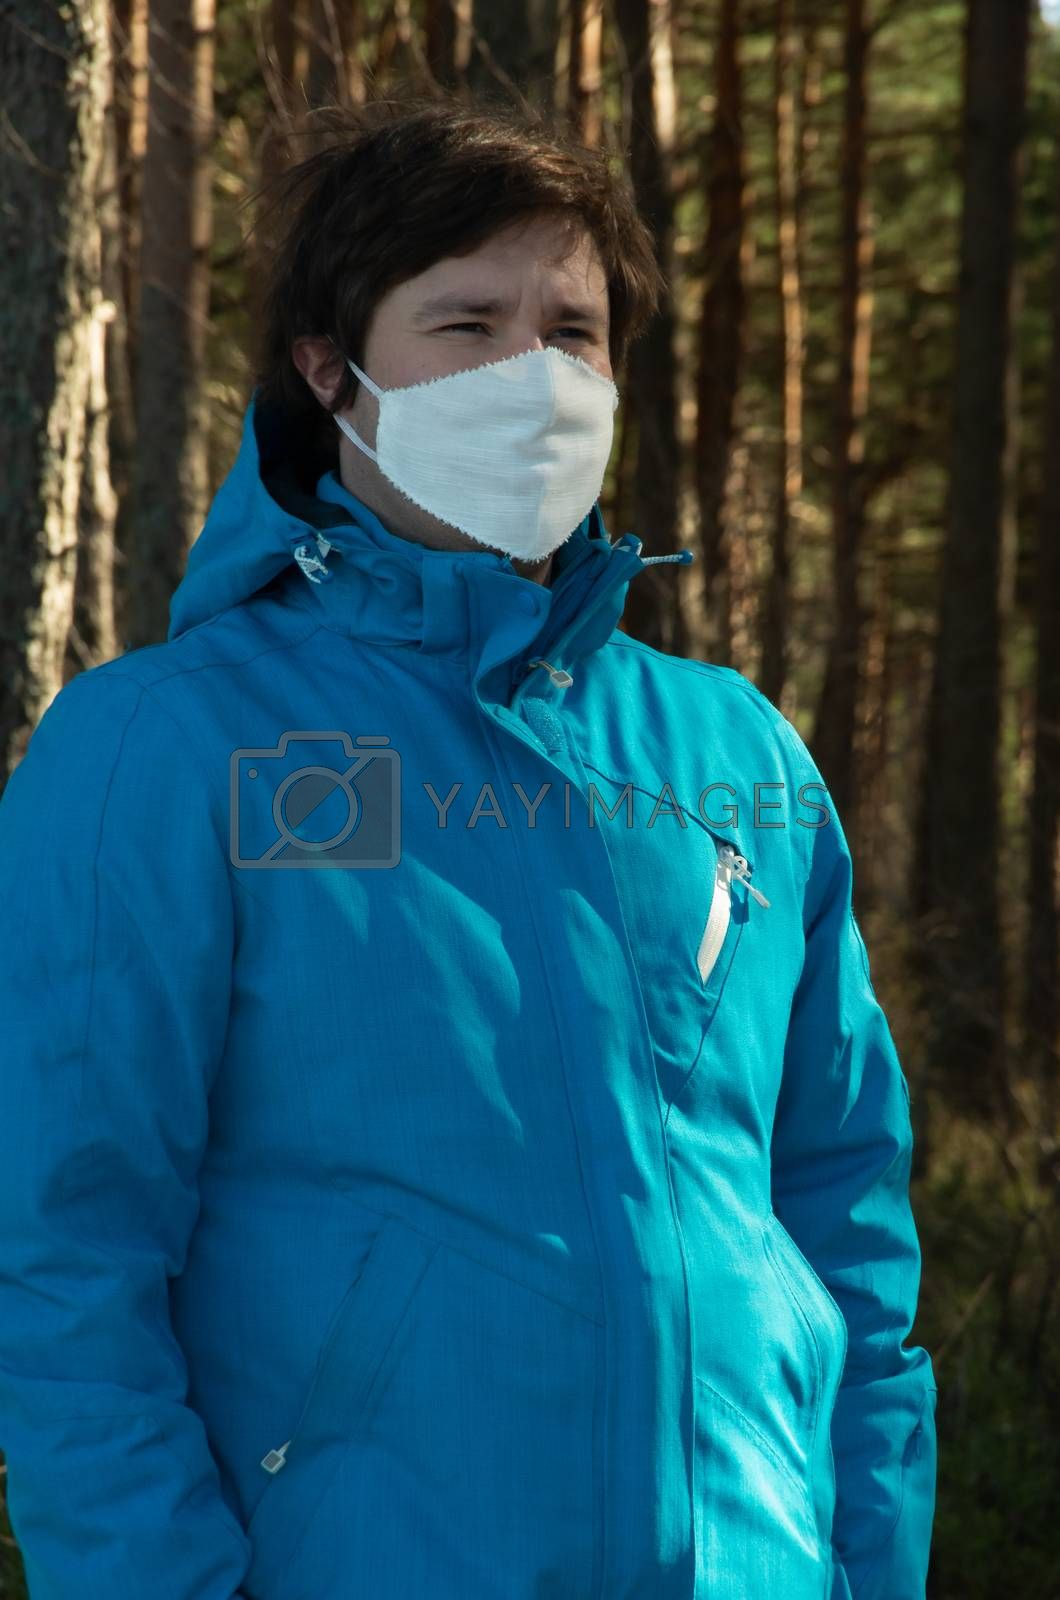 Virus, a man with white face mask in a blue jacket, coronavirus, COVID-19